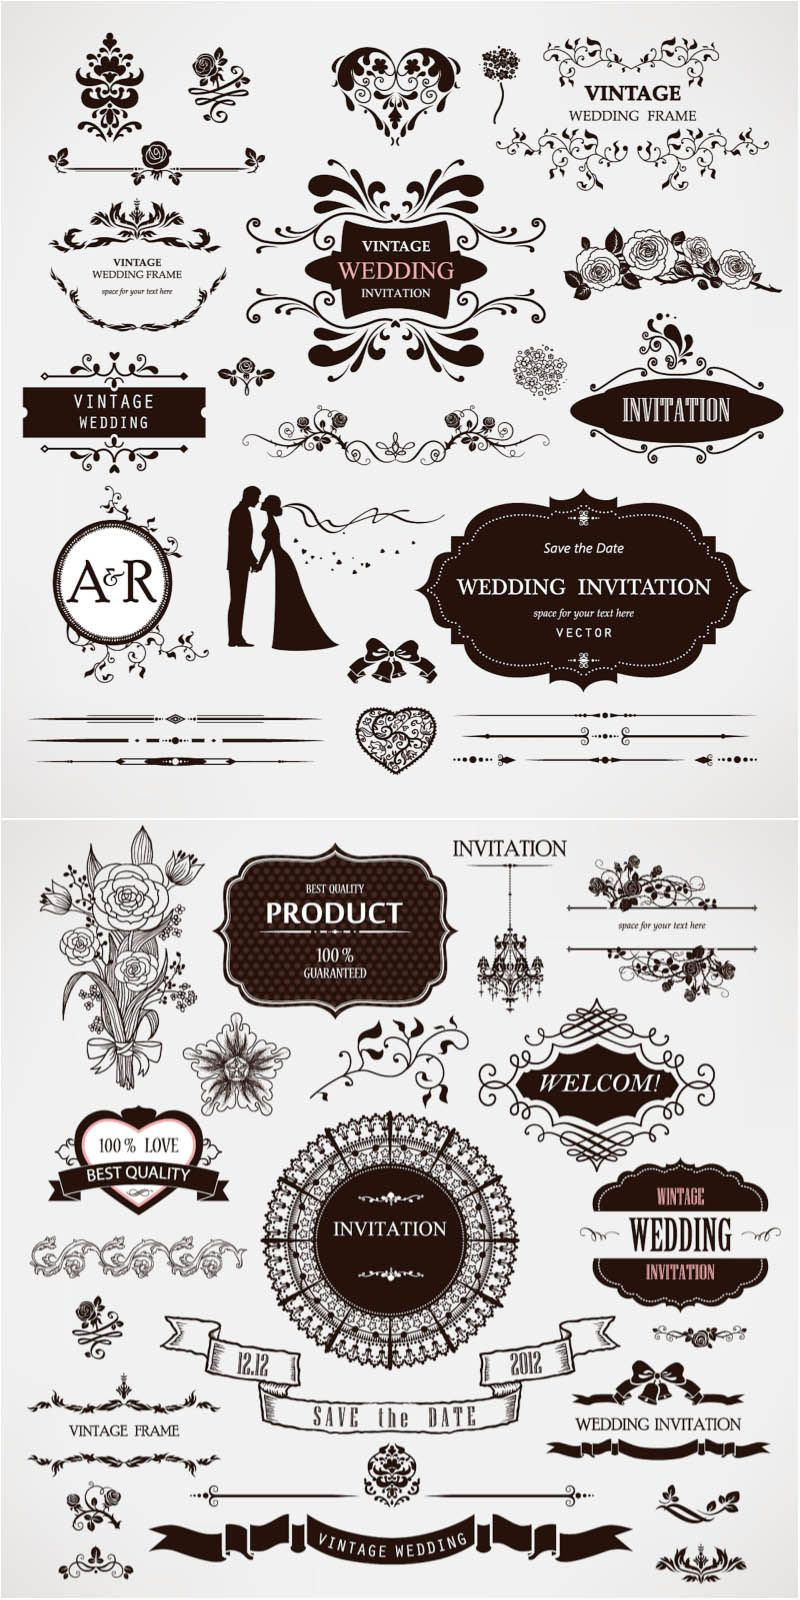 Wedding decor vector vector graphics vector illustrations wedding decor vector vector graphics vector illustrations stopboris Choice Image